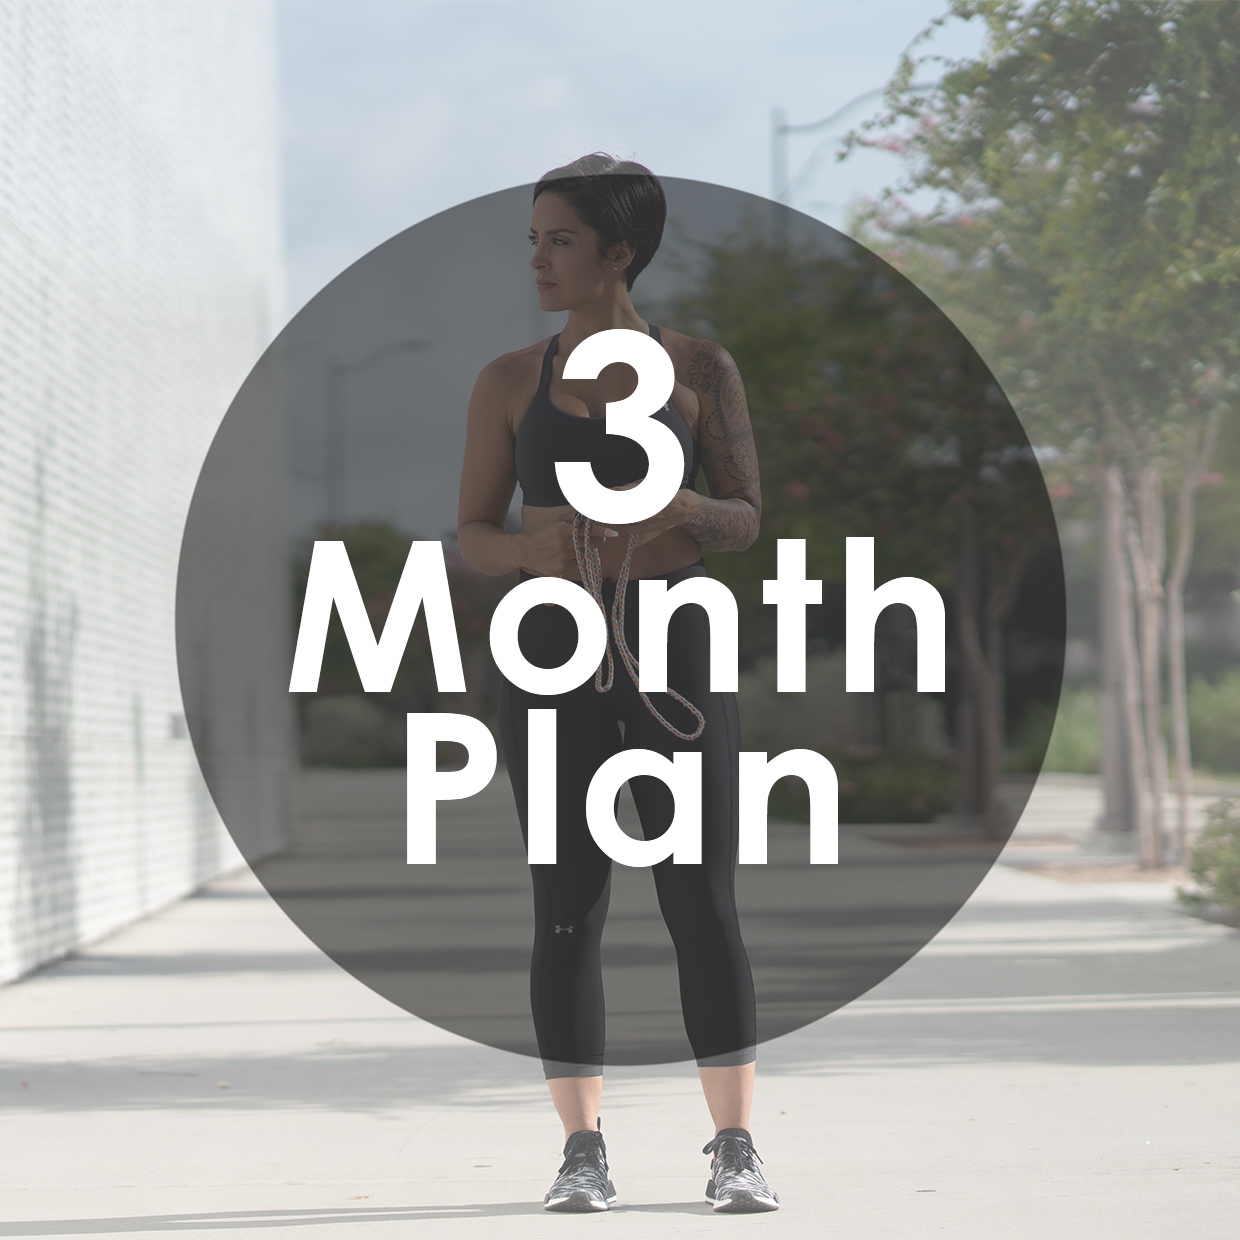 • BRING THE BEST IN YOU    90 Day Workout Plan  Intake Questionnaire  Macro Assistance - Nutritional Guidance (Vegan/vegetarian friendly)  BreastFeed/Nurturing Friendly  Weekly Check Ins    New Workouts Every Month including Nutrition PLANS      Email Access for Questions      Monthly Video Chat